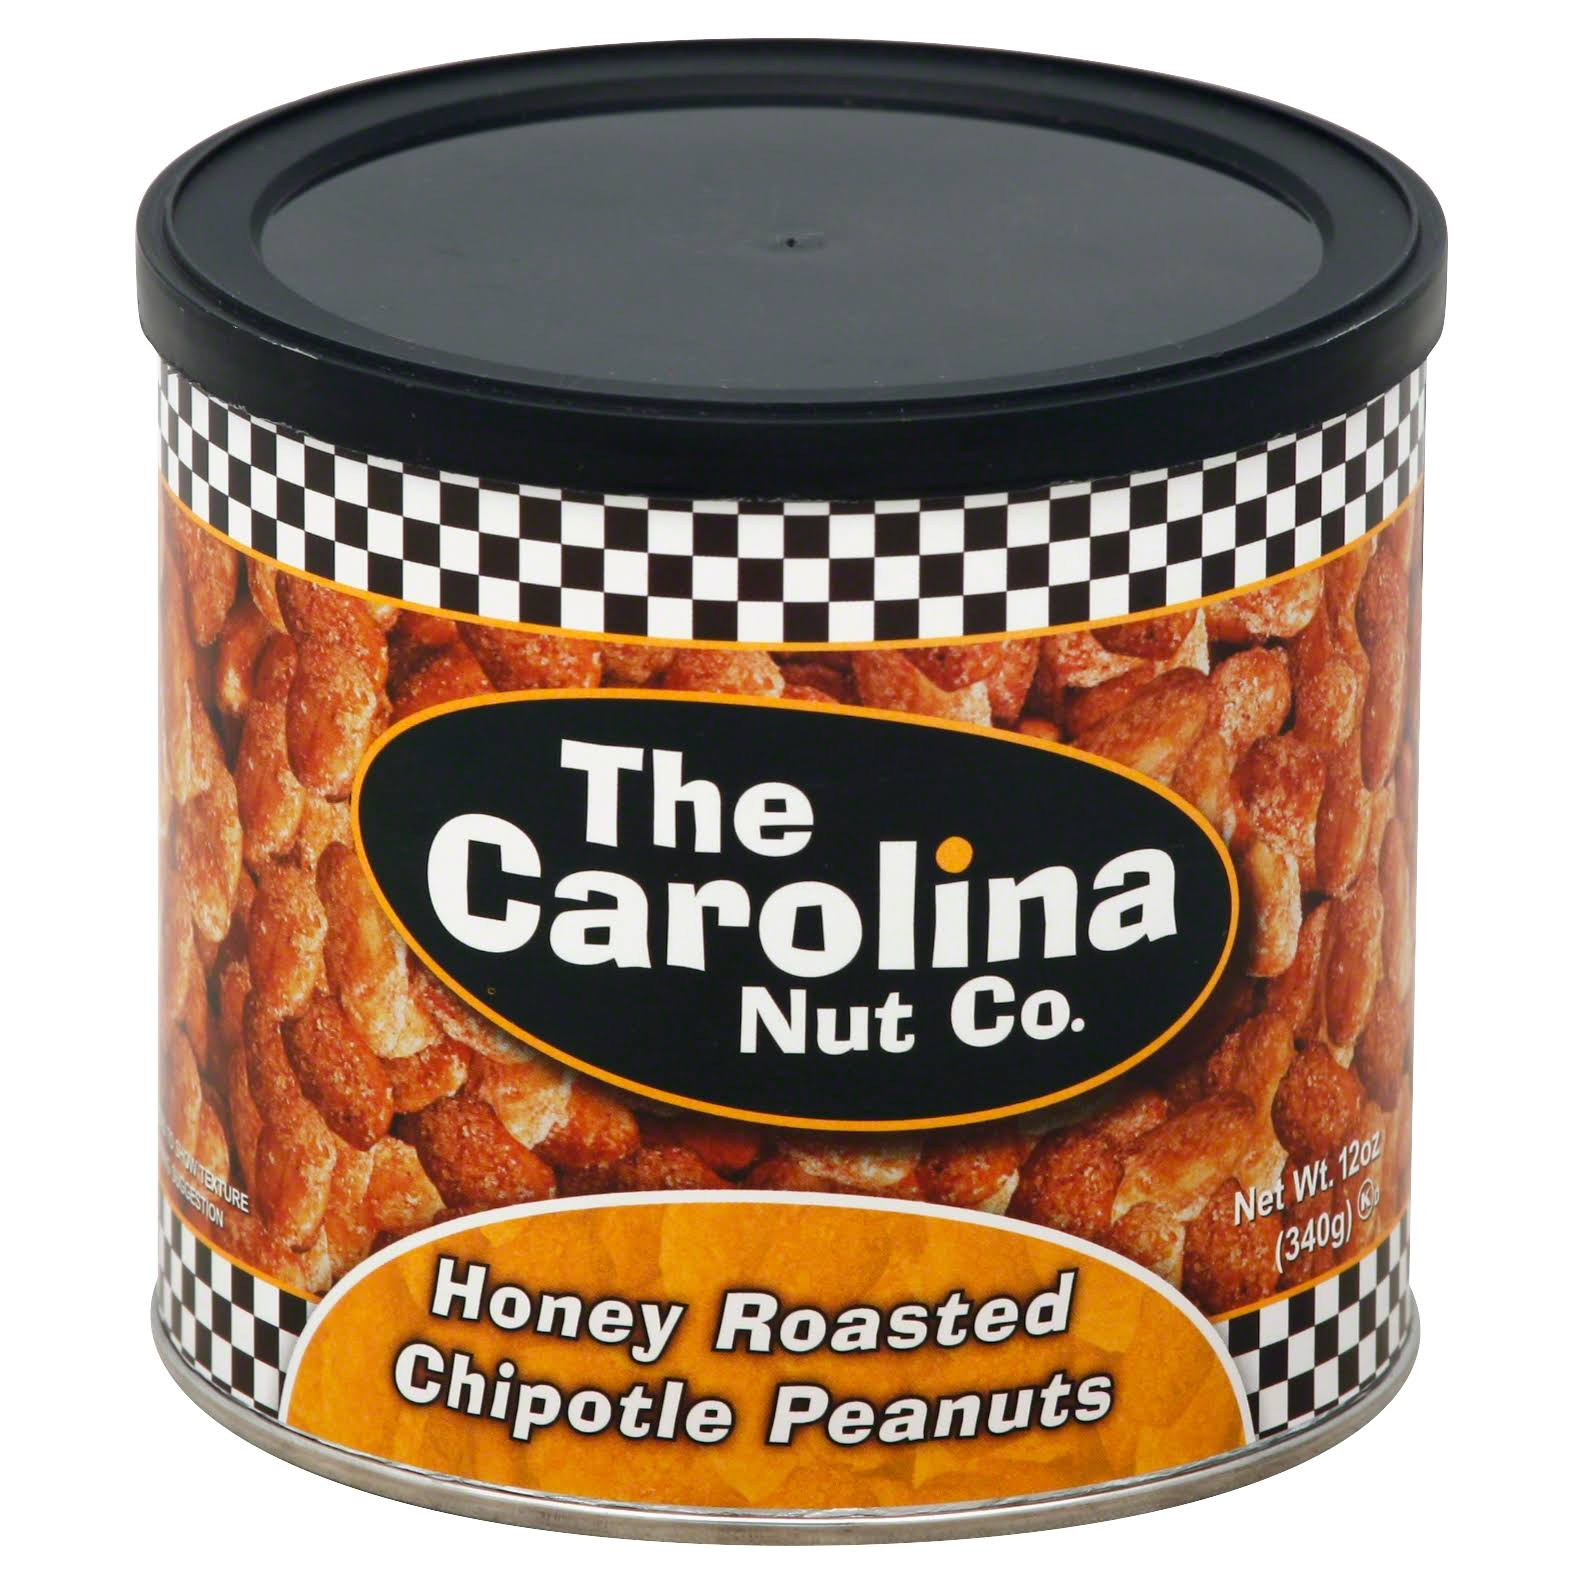 The Carolina Nut Co. Honey Roasted Chipotle Peanuts - 12oz